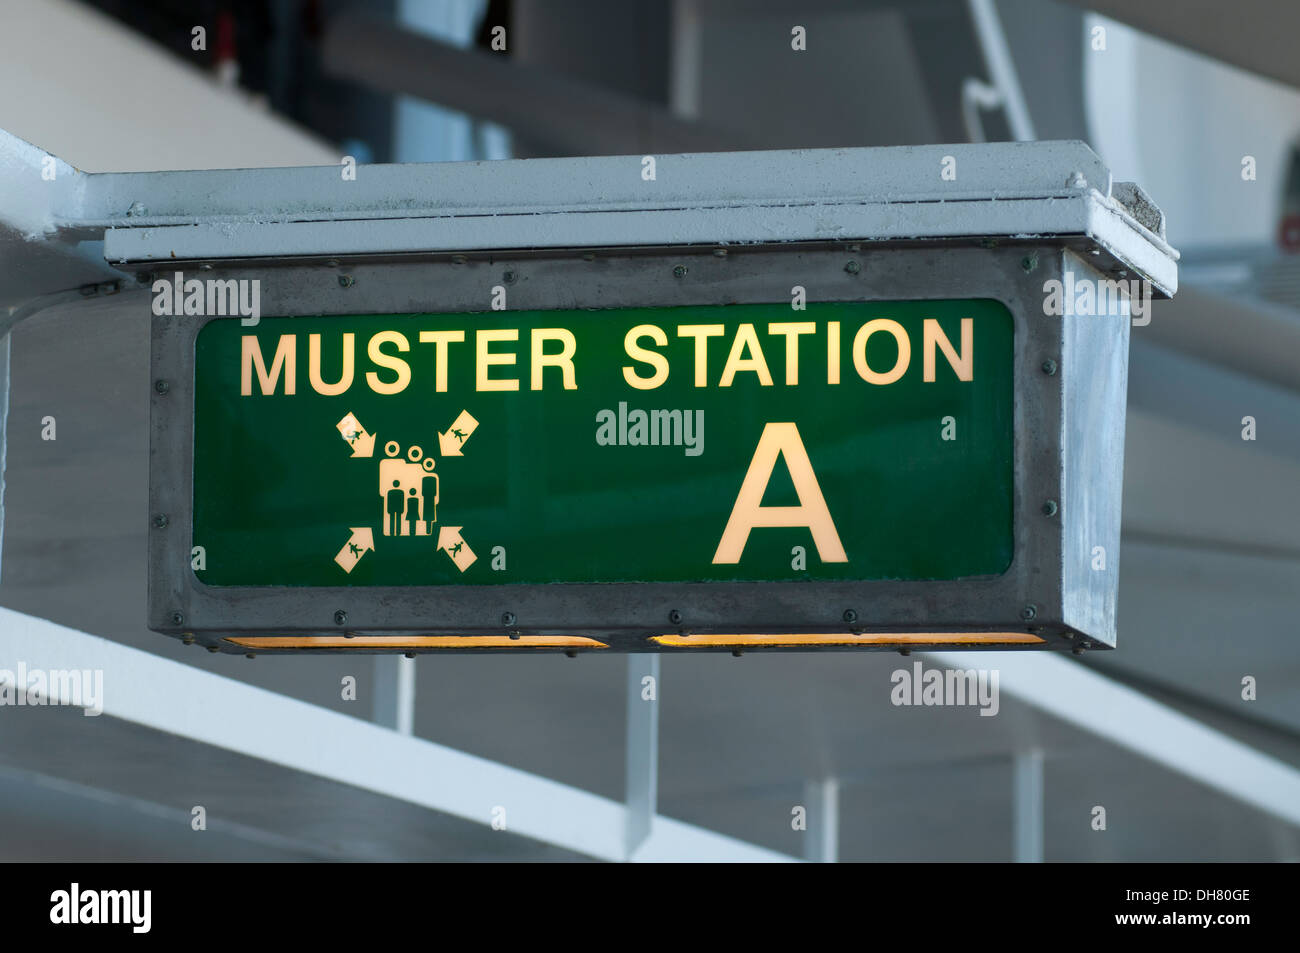 Muster station sign directing passengers to the life boats - Stock Image